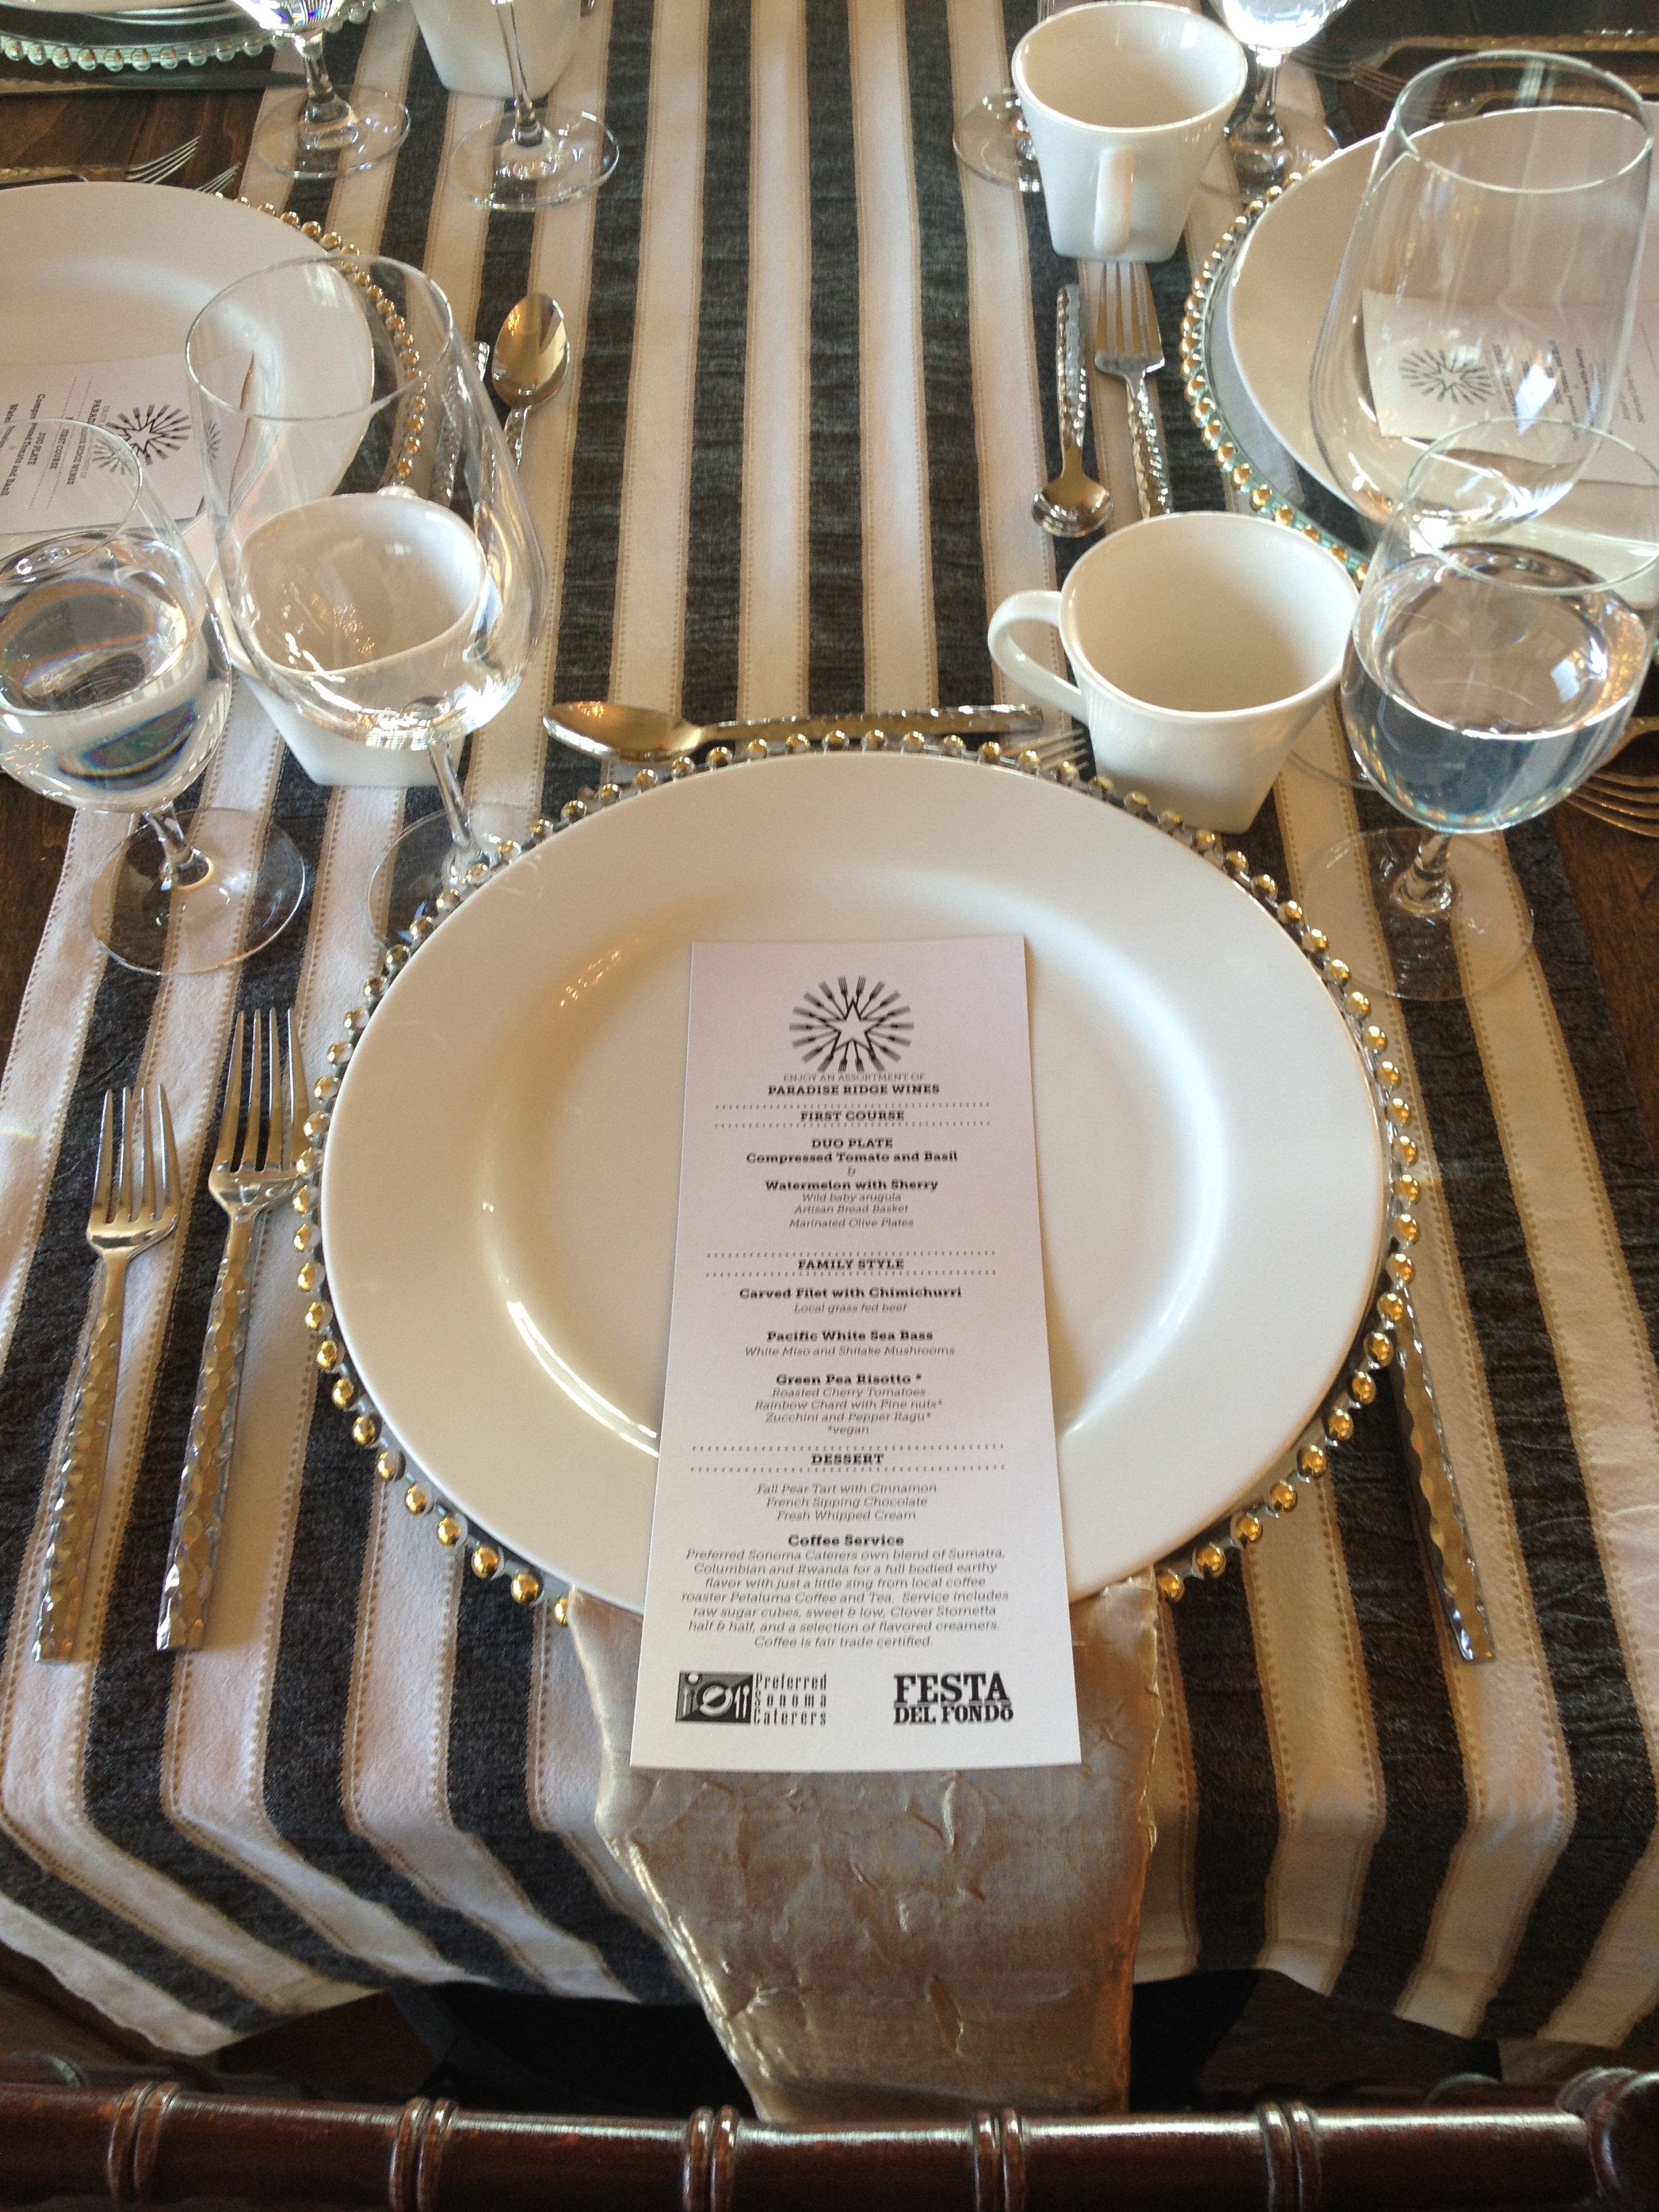 Black and White Strip runners on Farm Table